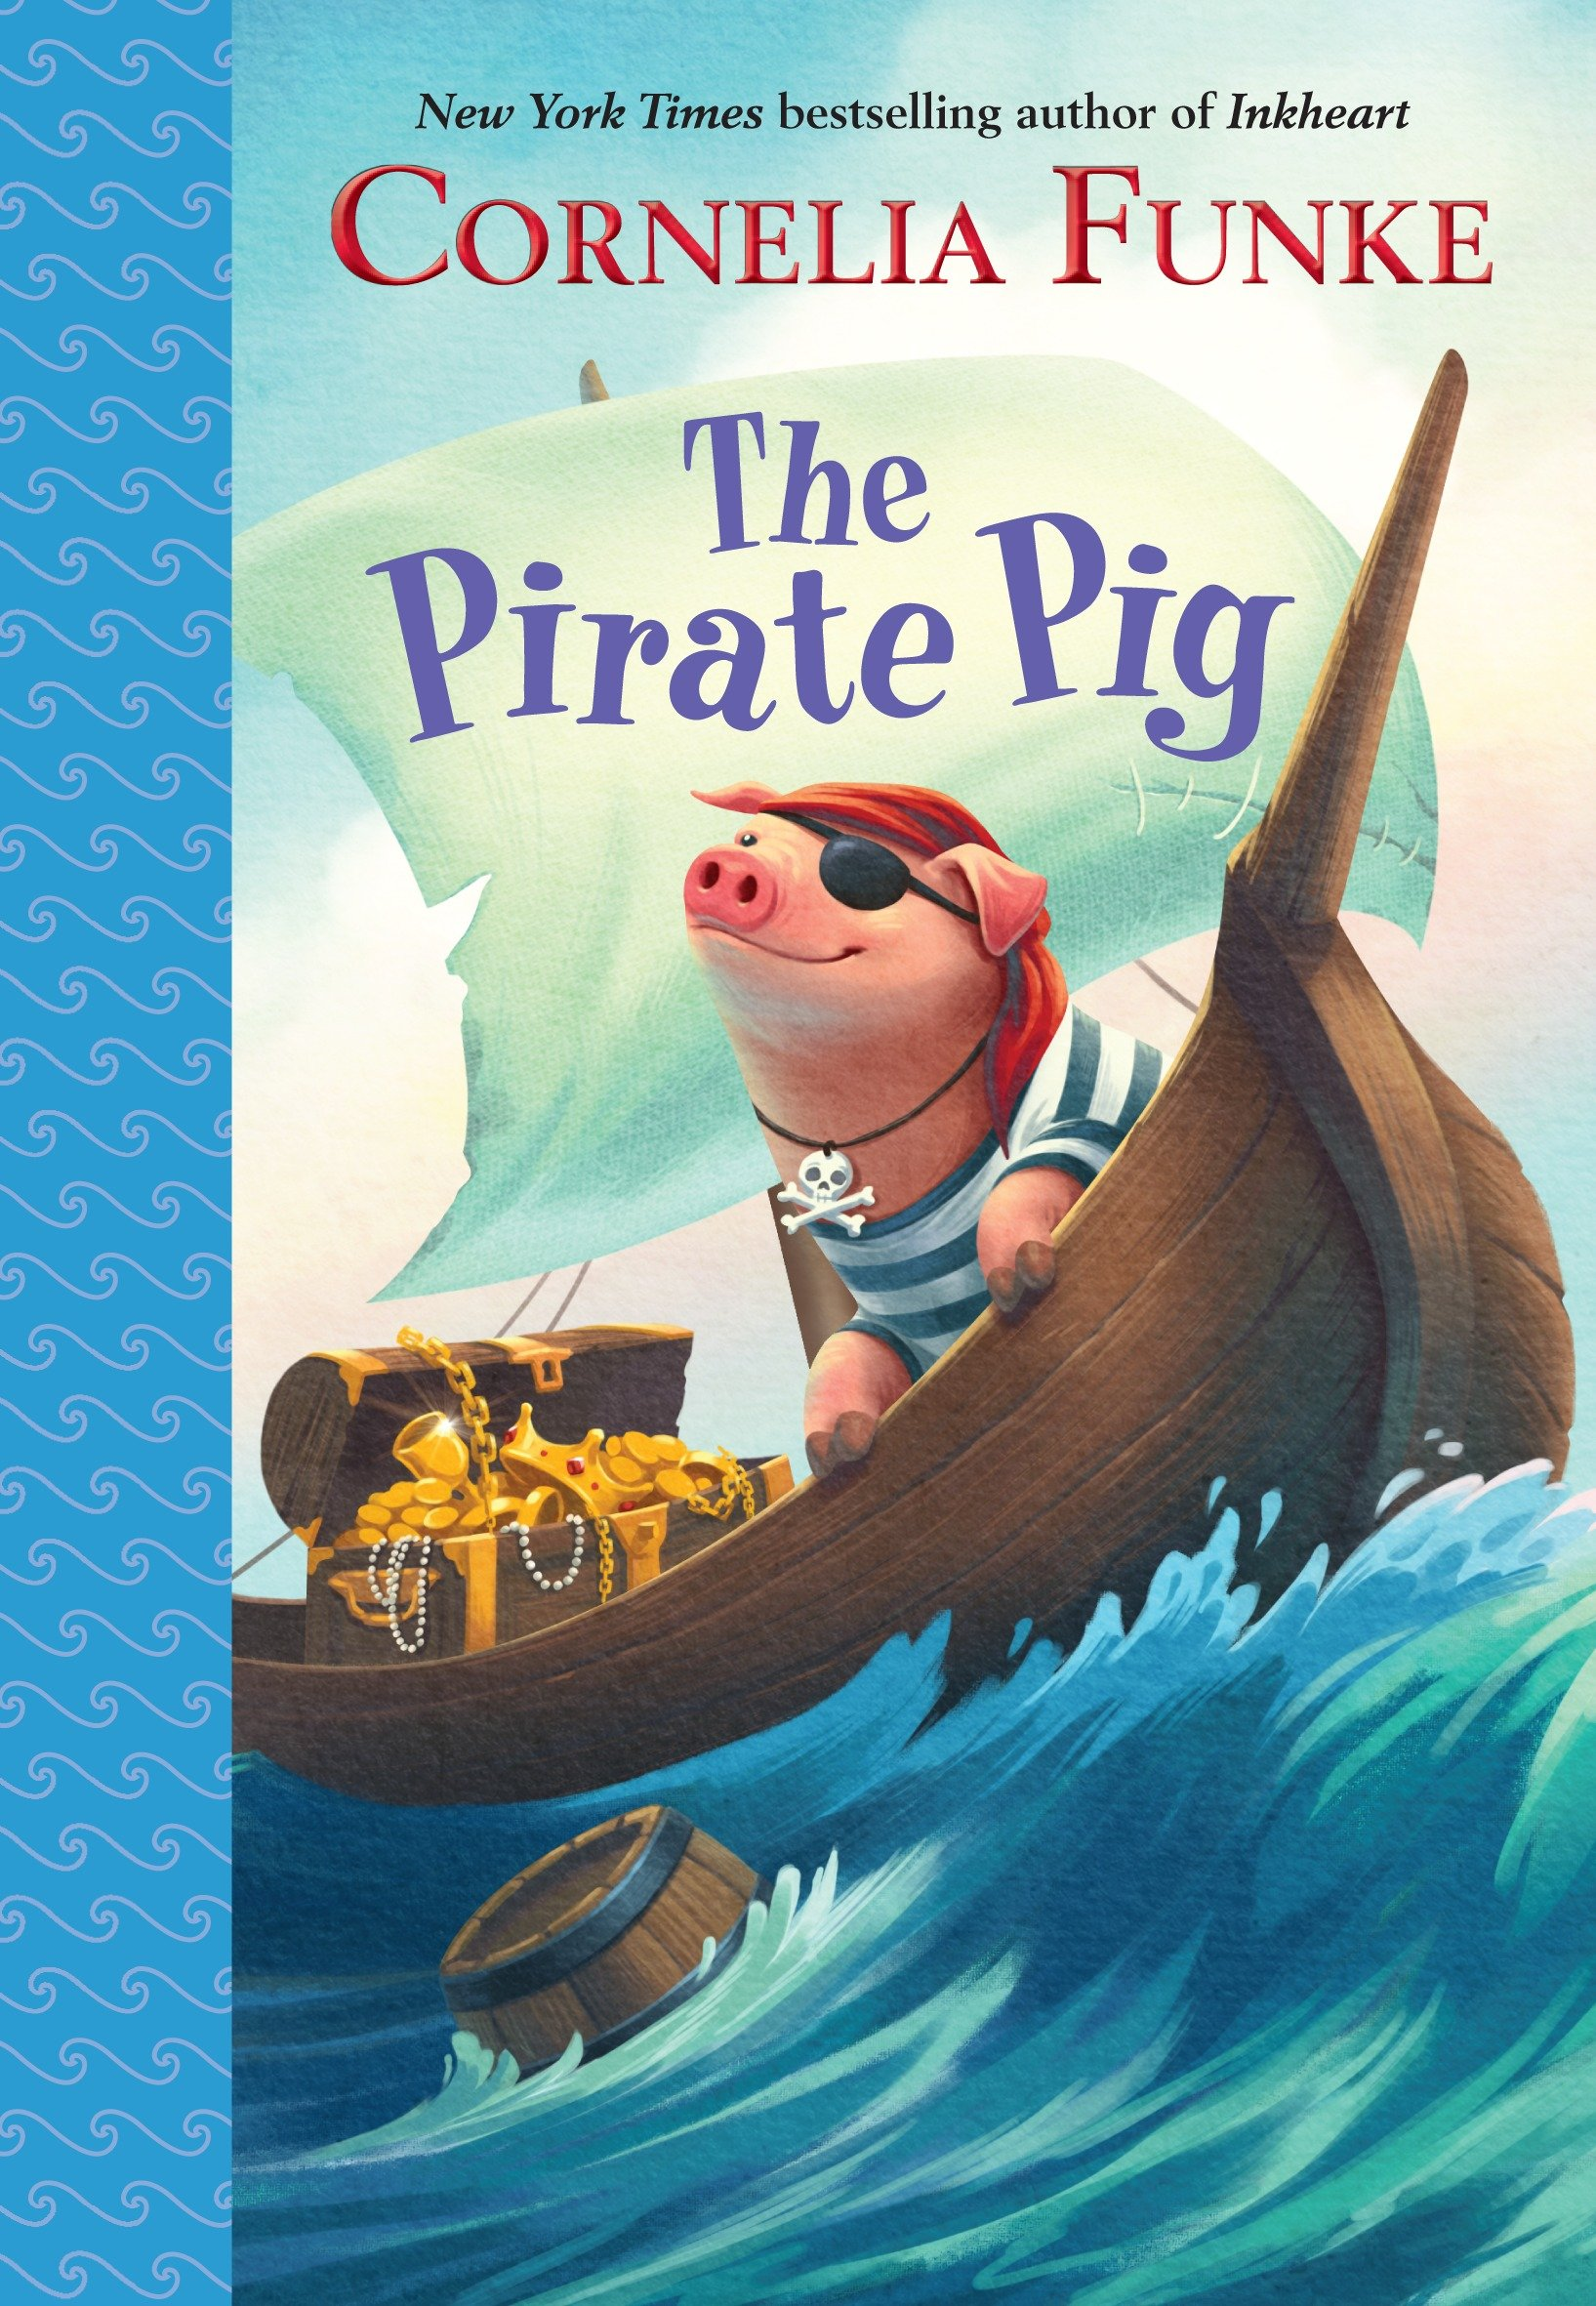 The pirate pig cover image